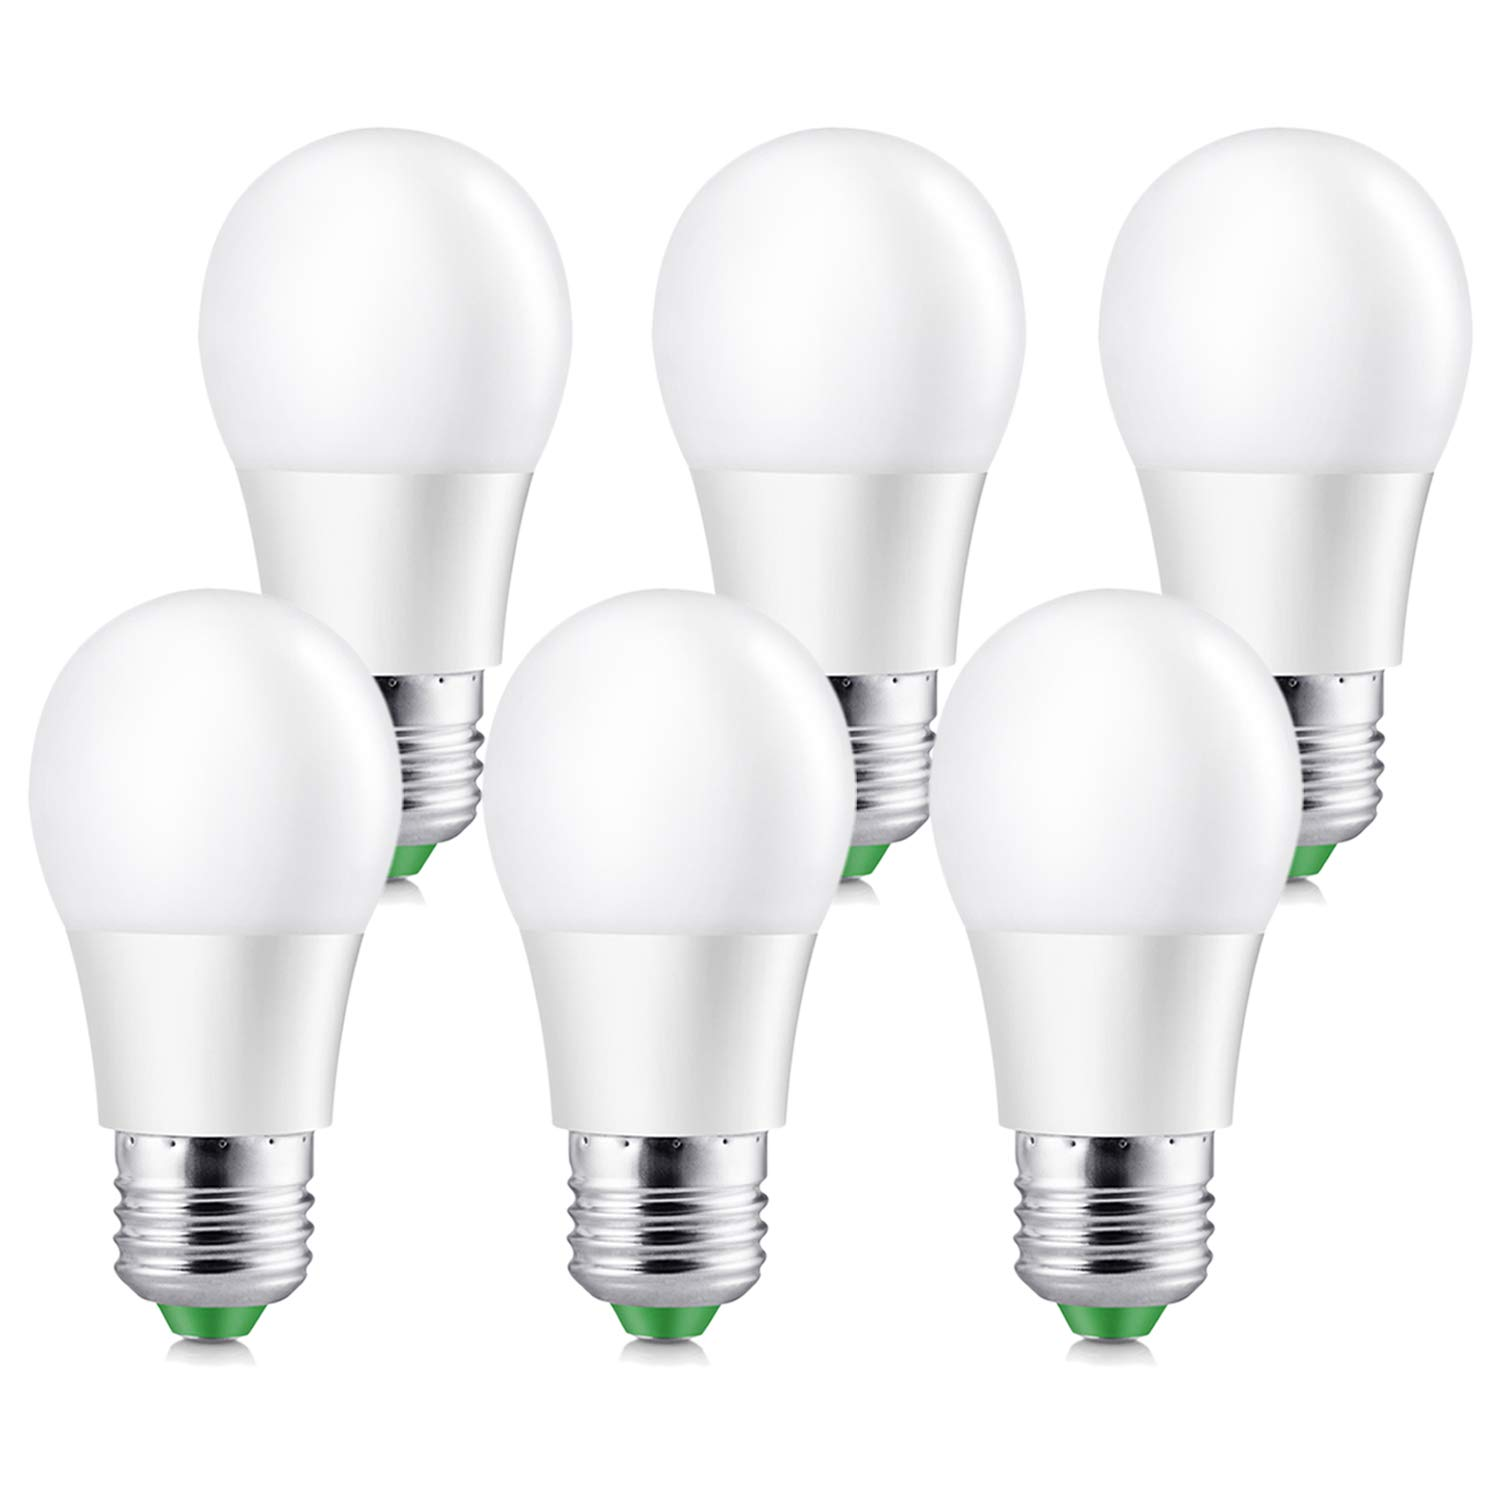 Elrigs A15 LED Bulb, 5W (40 Watt Equivalent), Warm White (3000K), E26 Base, Work with 110V/220V, Non-Dimmable, 450lm, Pack of 6